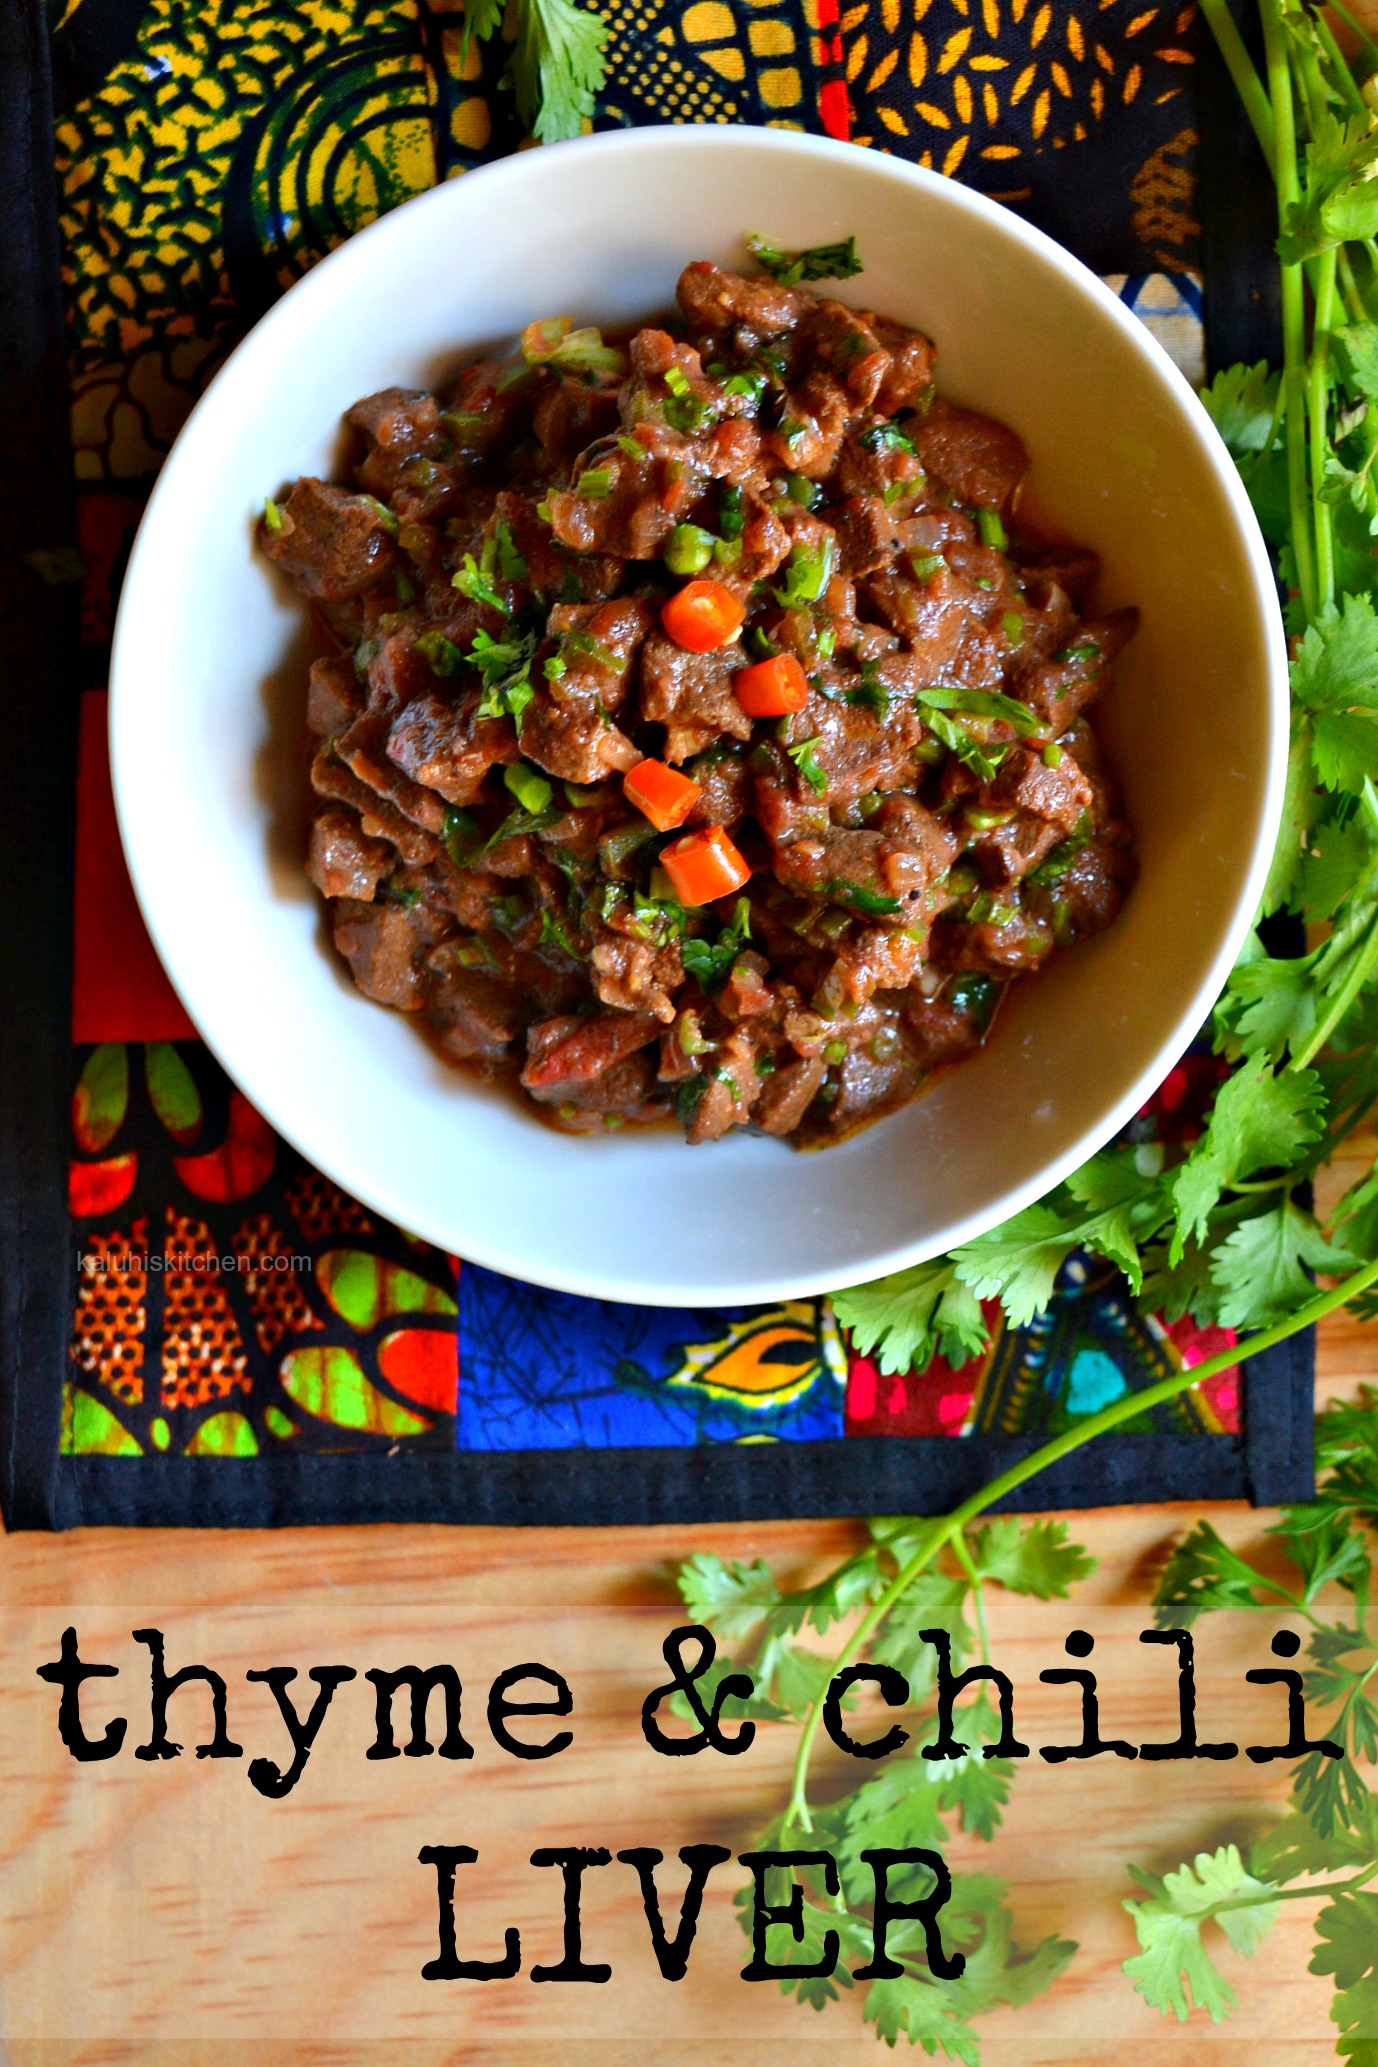 thyme and chili liver_kenyan food bloggers_kenyan food recipes_organ meats_alternatives to red meat_kaluhiskitchen.com_best kenyan food blog by Kaluhi Adagala